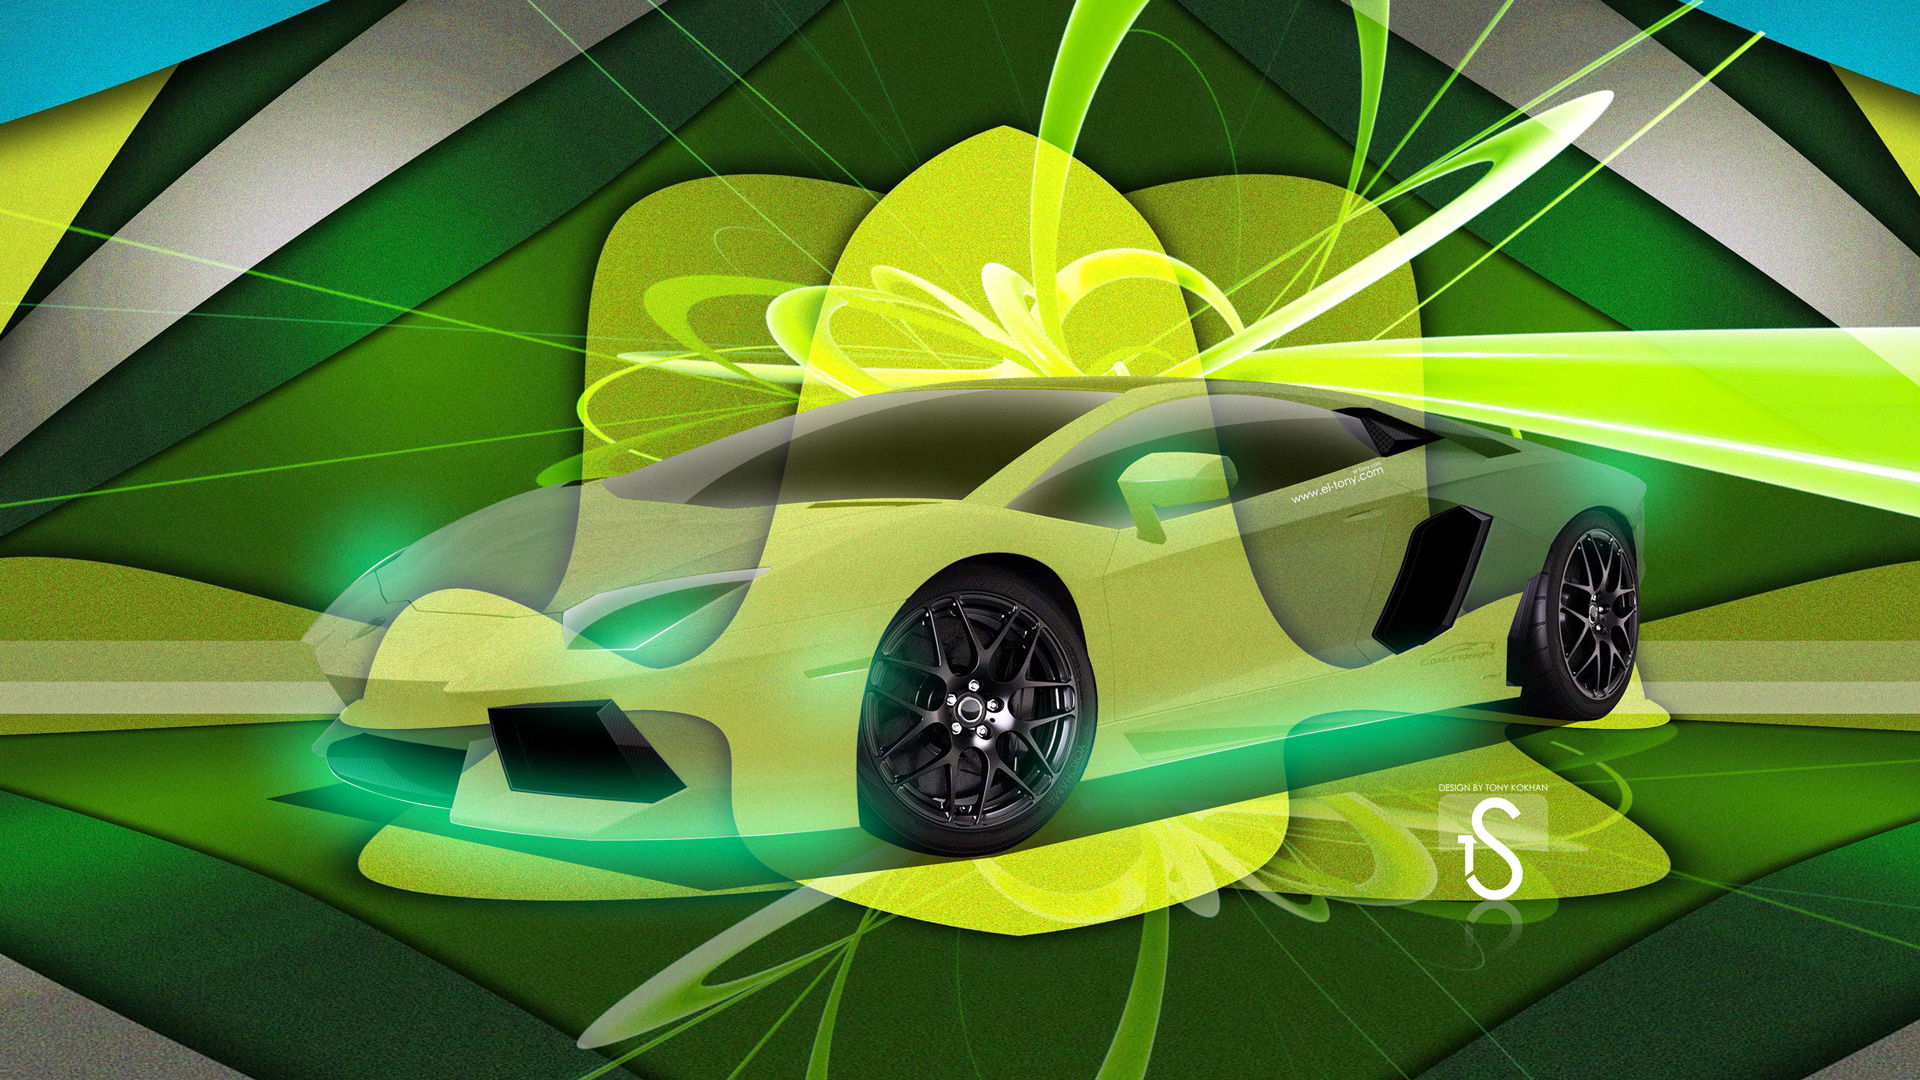 Exceptionnel Lamborghini Aventador Super Abstract Car 2013 Design By